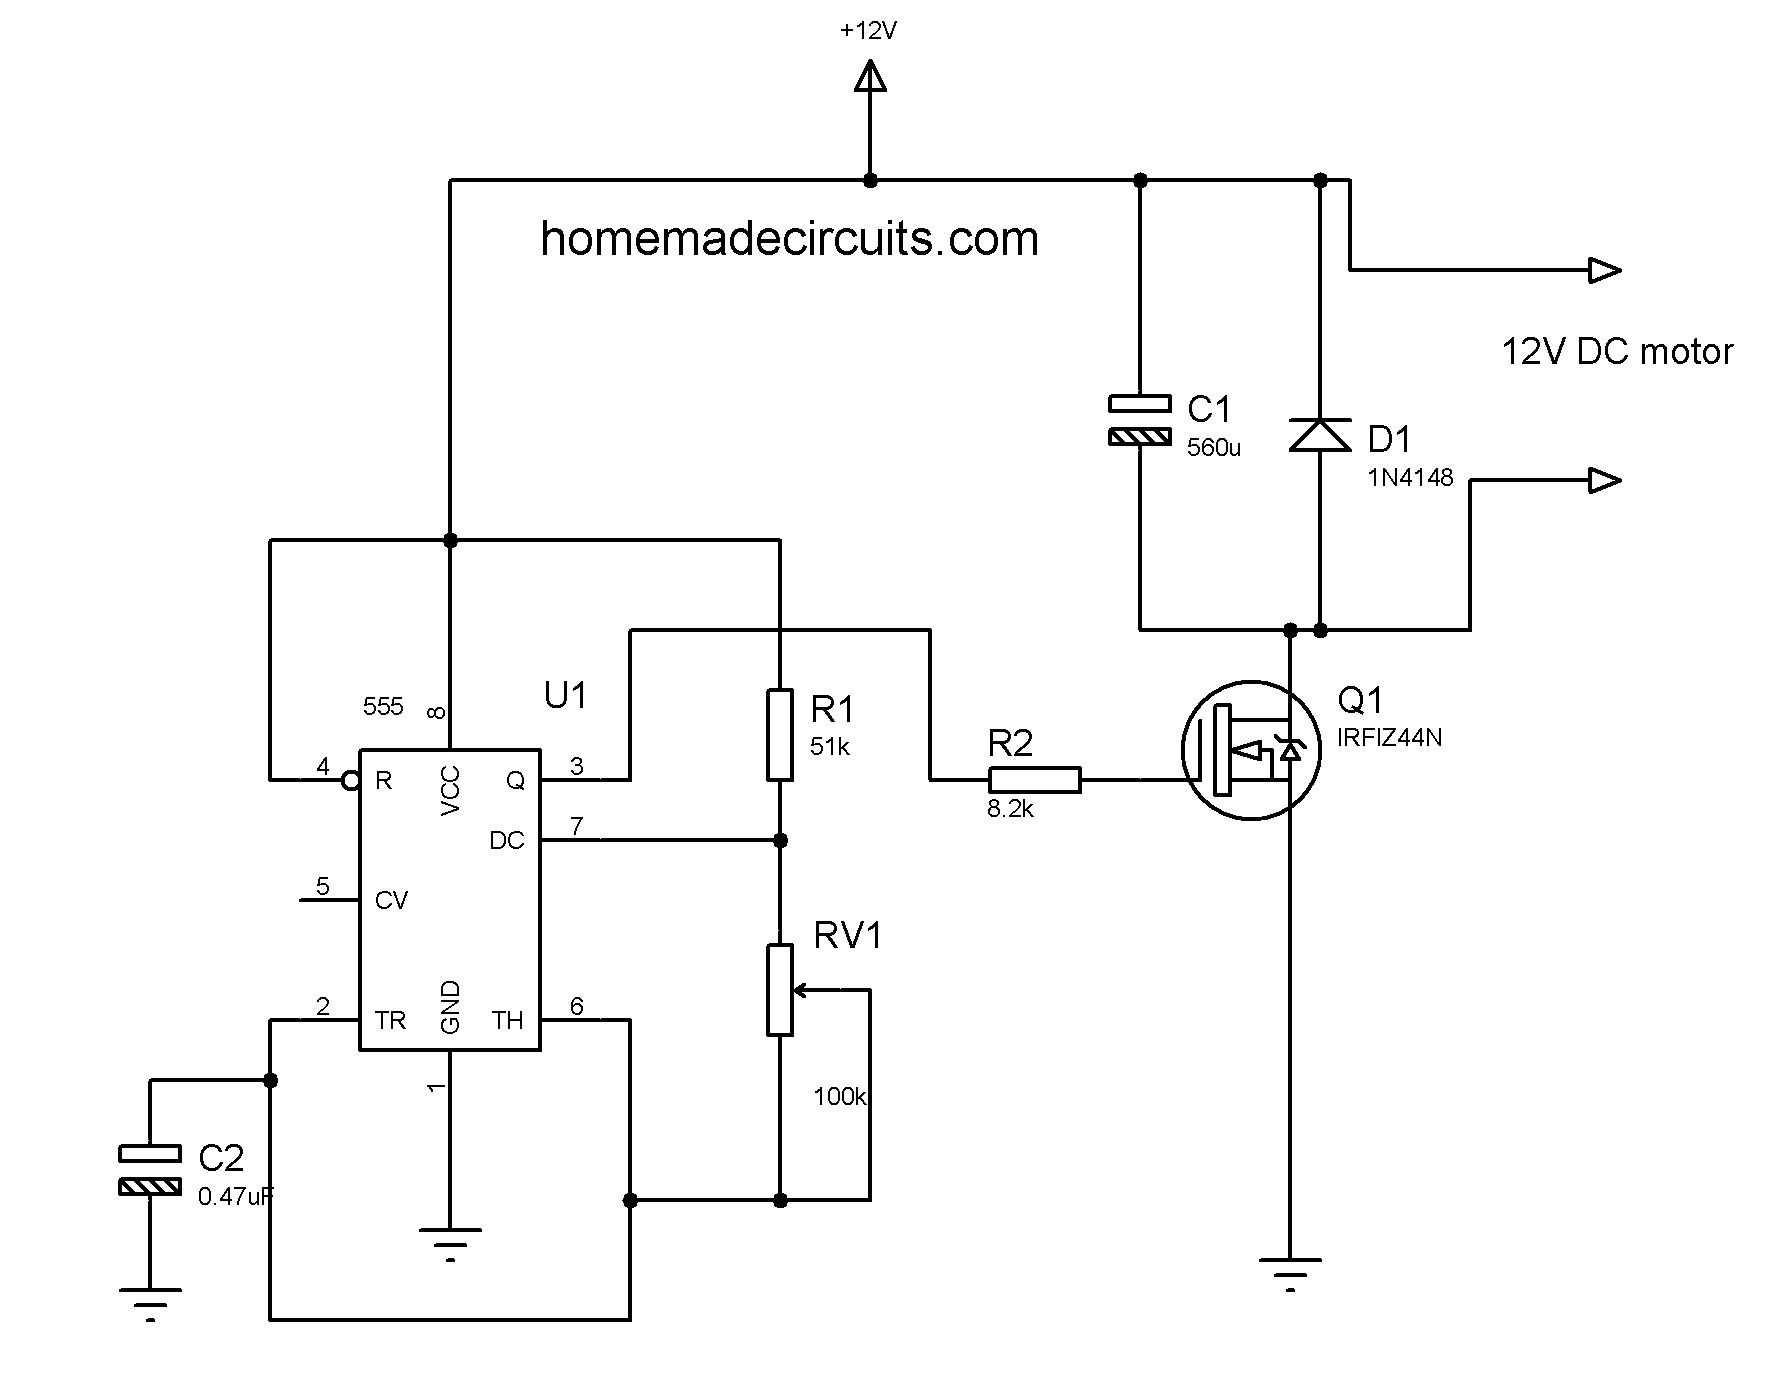 2 Lamp Flasher Using Mosfet Dc Motor Speed Controller Pulse Width Modulation Circuits Techno